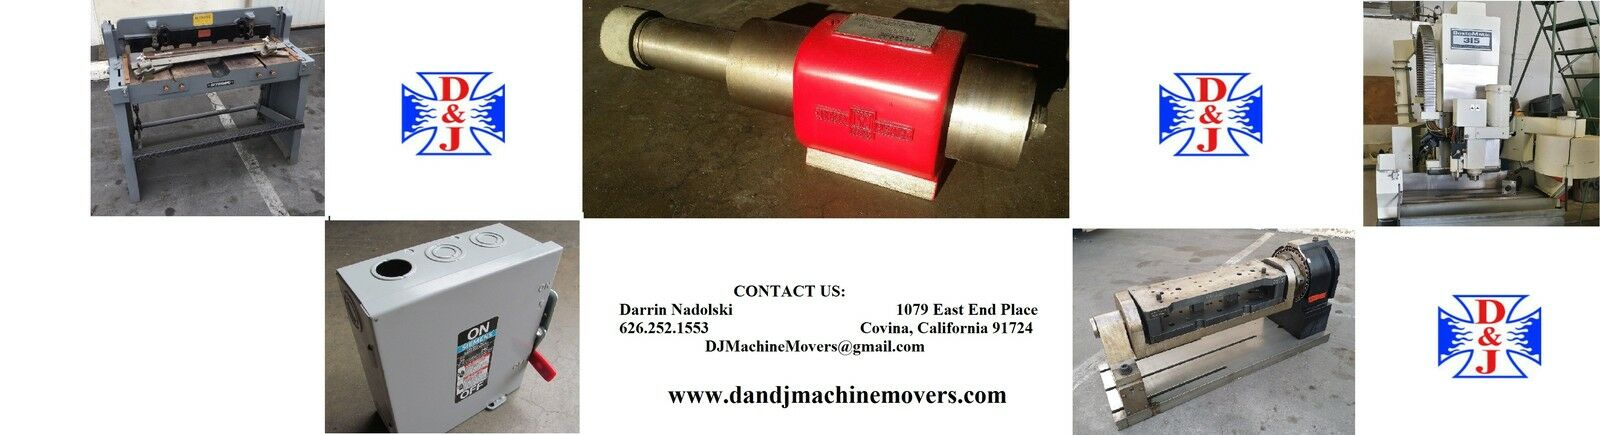 DandJMACHINERY